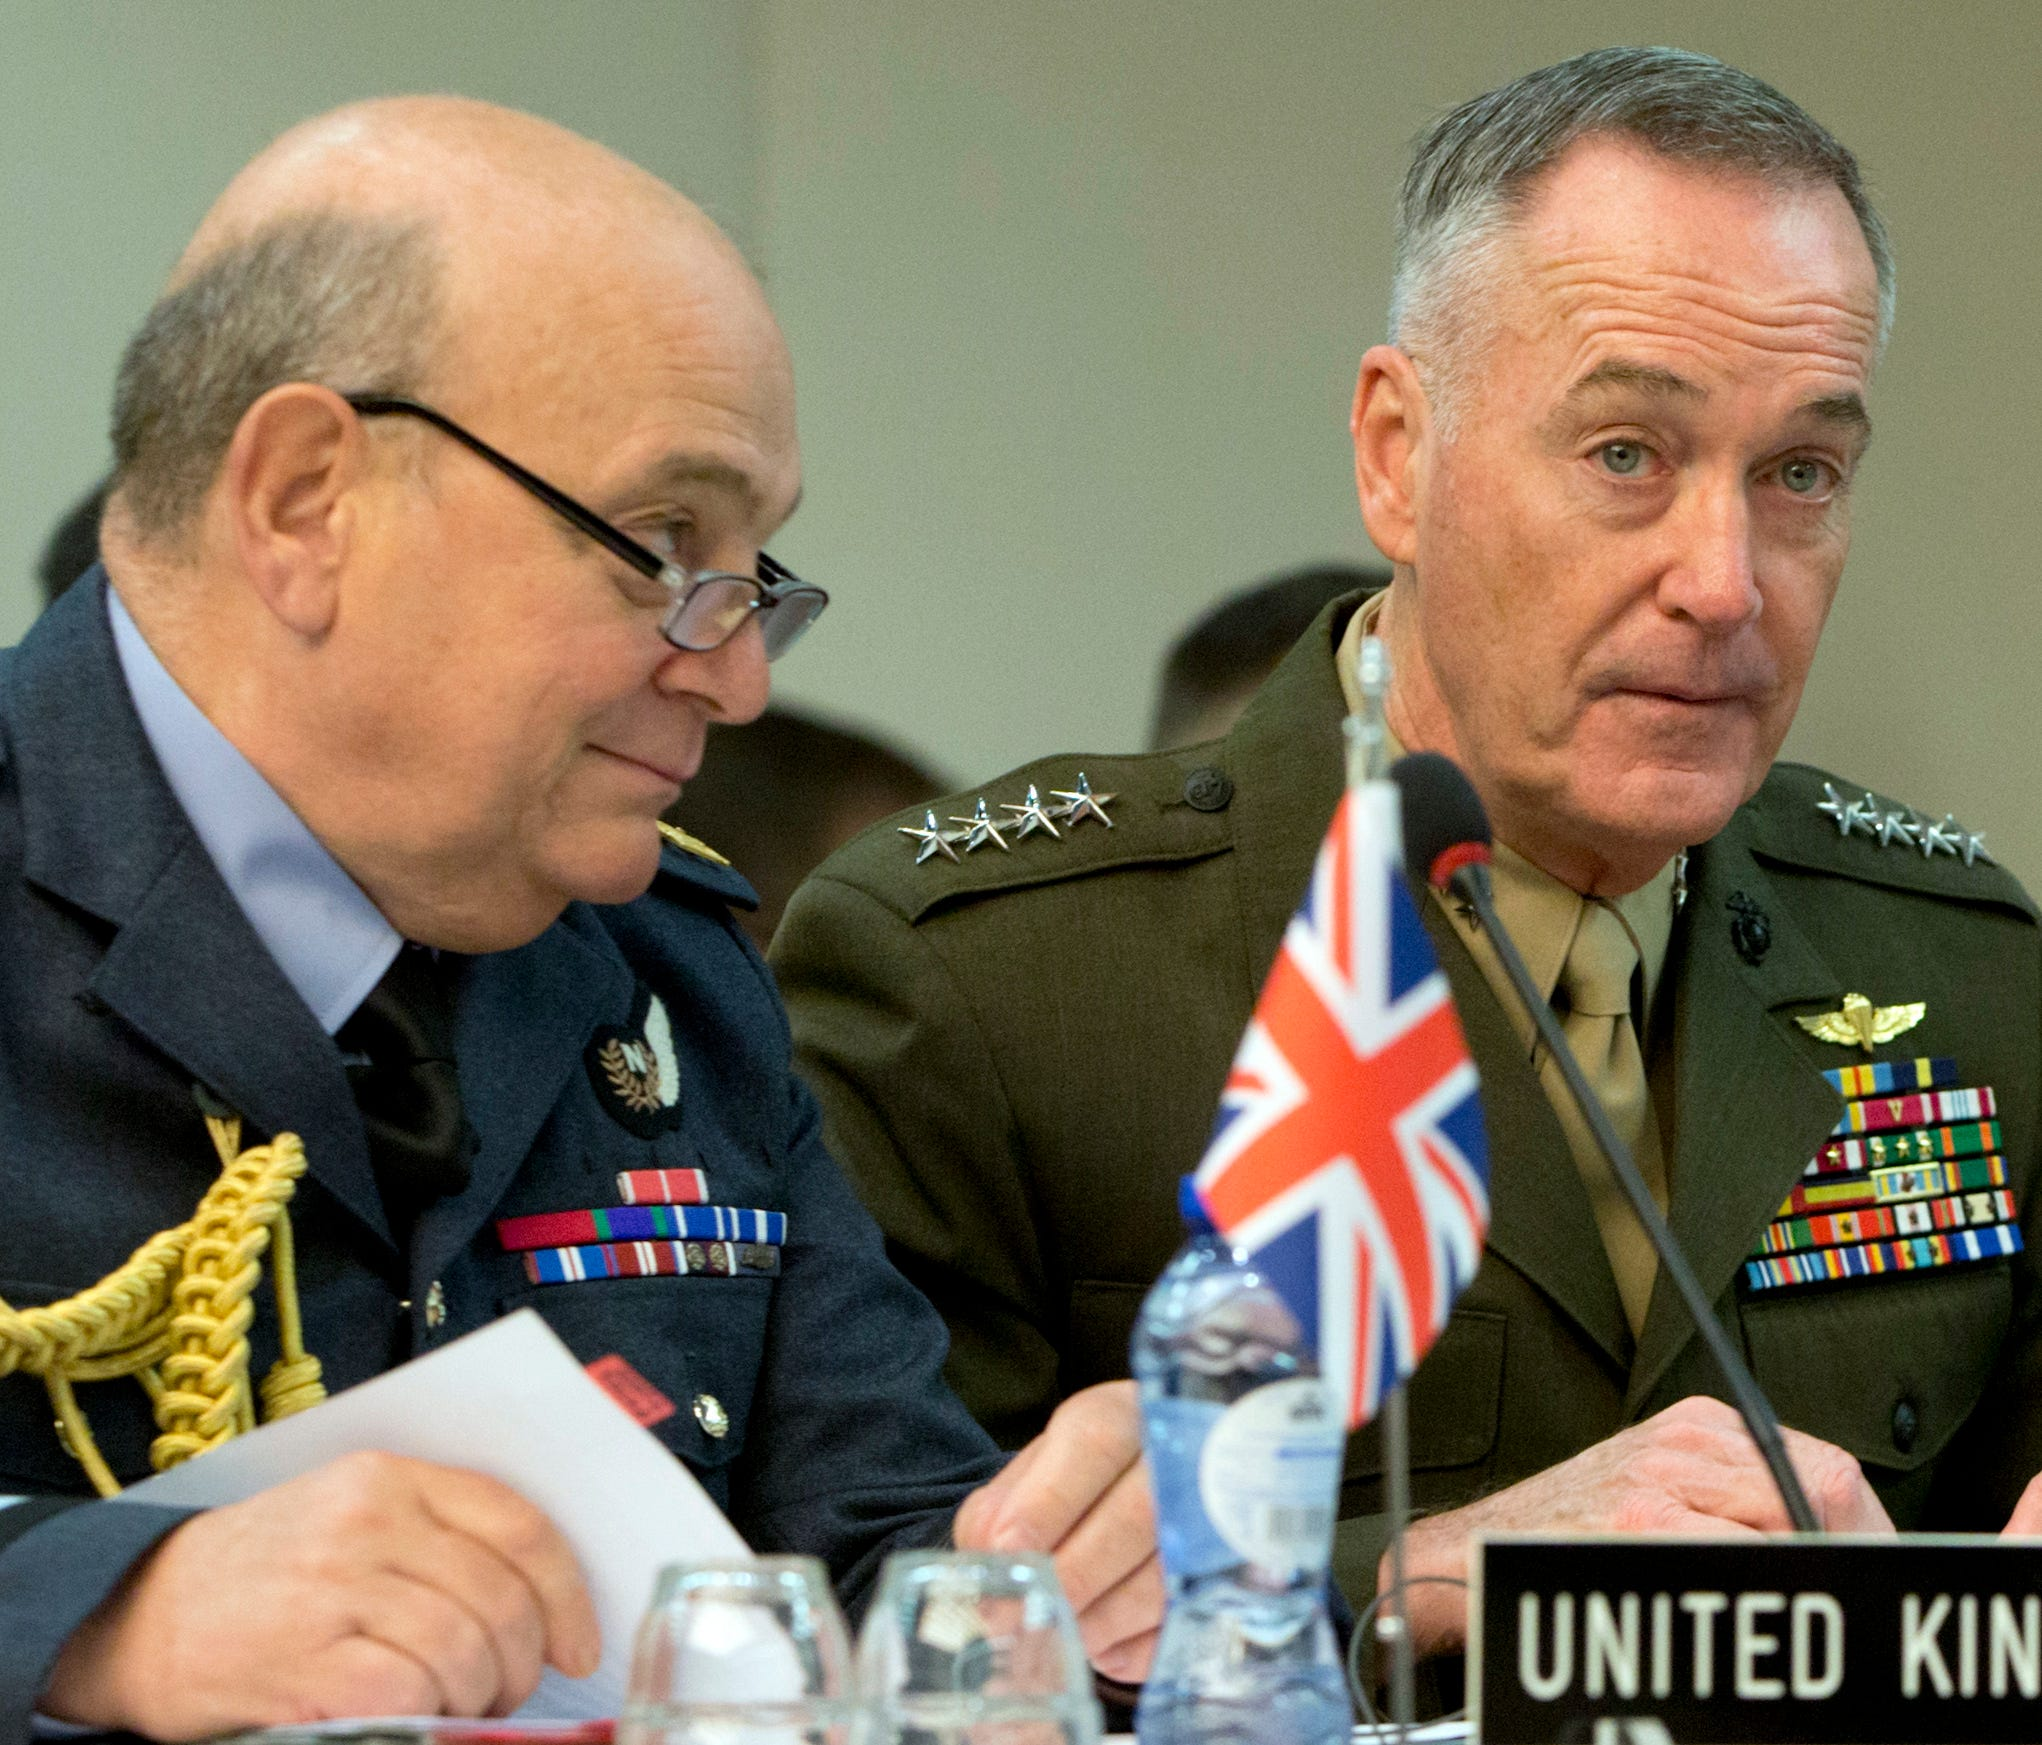 British Chief of Defense Air Chief Marshal Sir Stuart Peach, left, speaks with U.S. Chief of Defense General Joseph F. Dunford, Jr. during a meeting of NATO chiefs of defense at NATO headquarters in Brussels on Wednesday, May 17, 2017. (AP Photo/Virg